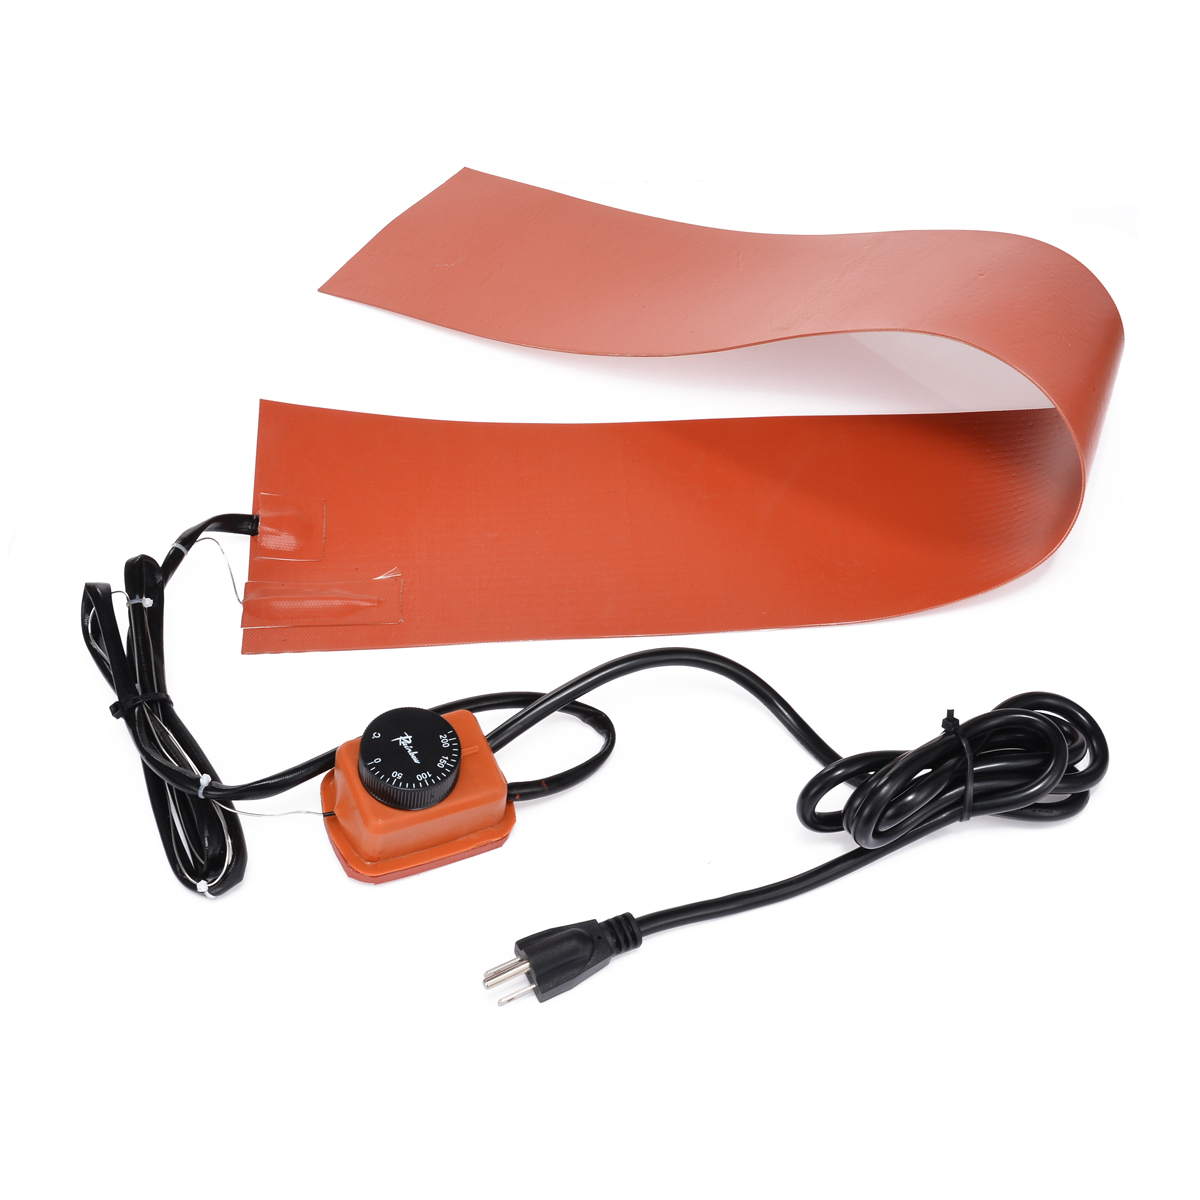 36*5.9 1200W 220V Silicone Rubber Heating Blanket w/ Temp Controller for Guitar Side Bending Silicone Heating Pad dia 500mm 1200w 220v w 3m psa